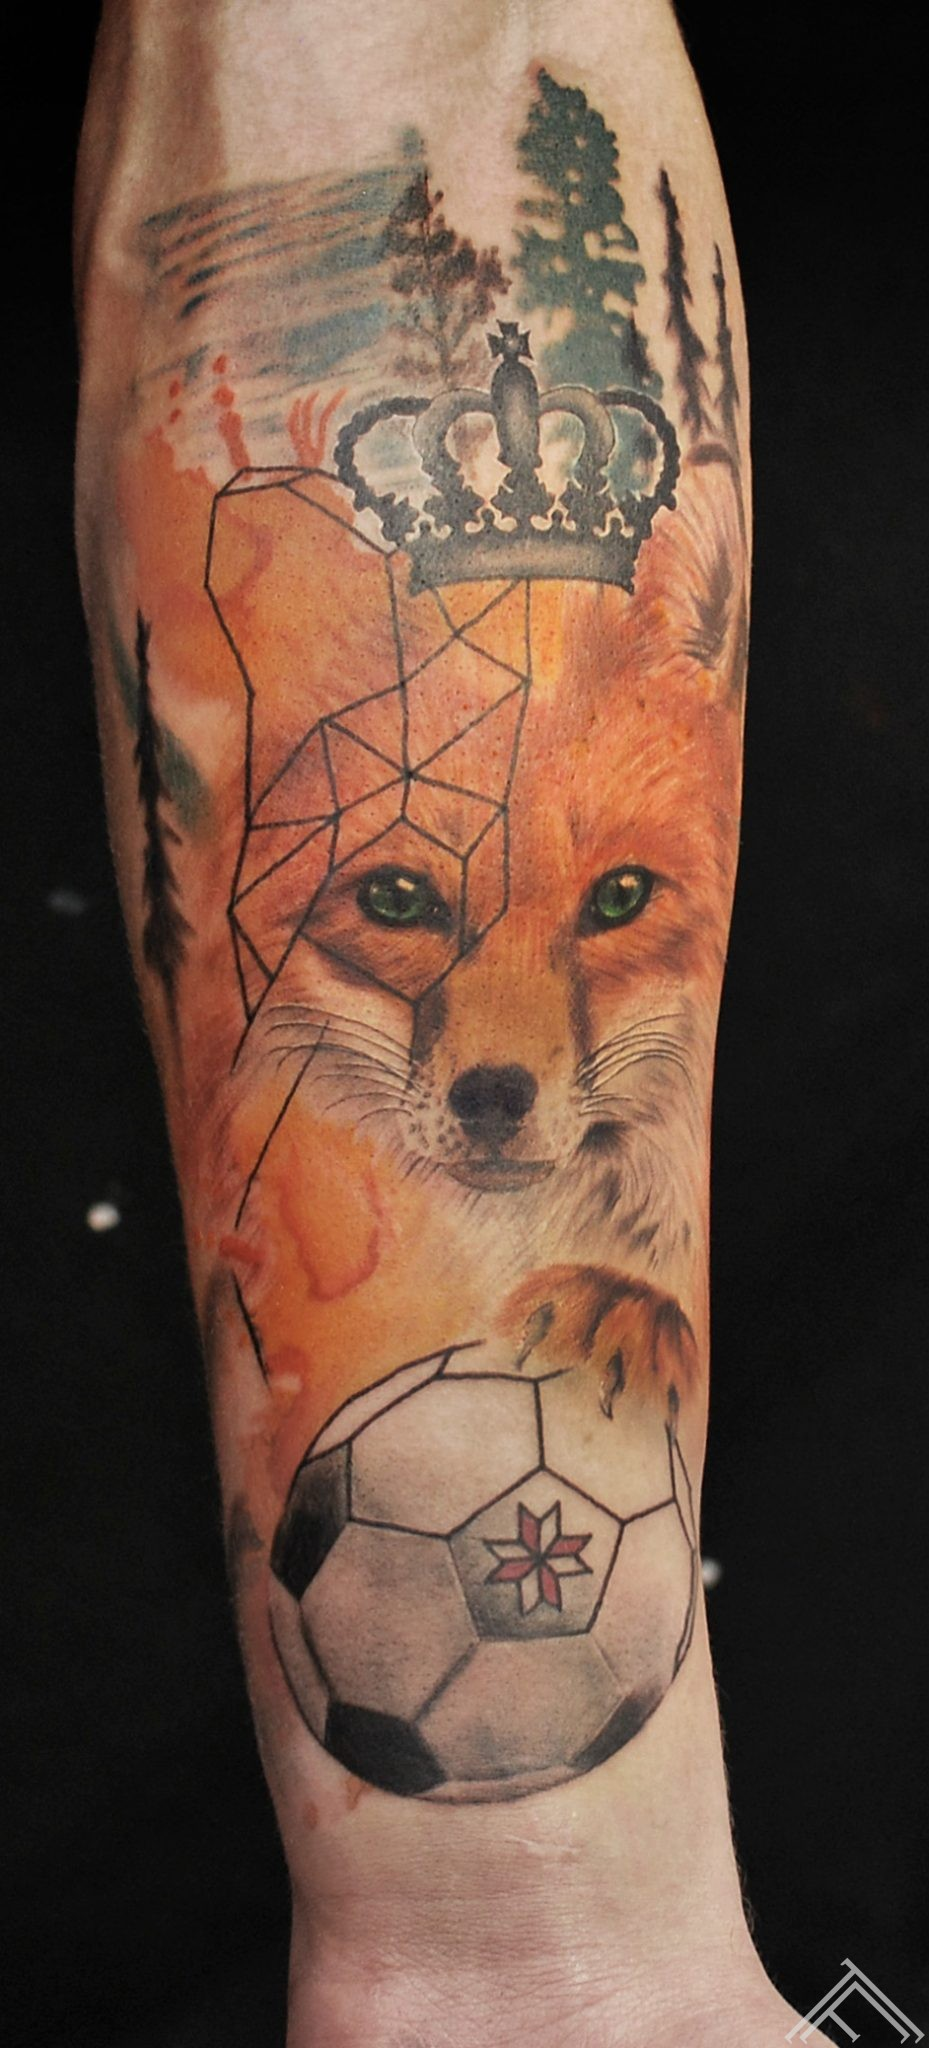 fox-animal-tattoo-tattoofrequency-janisanderson